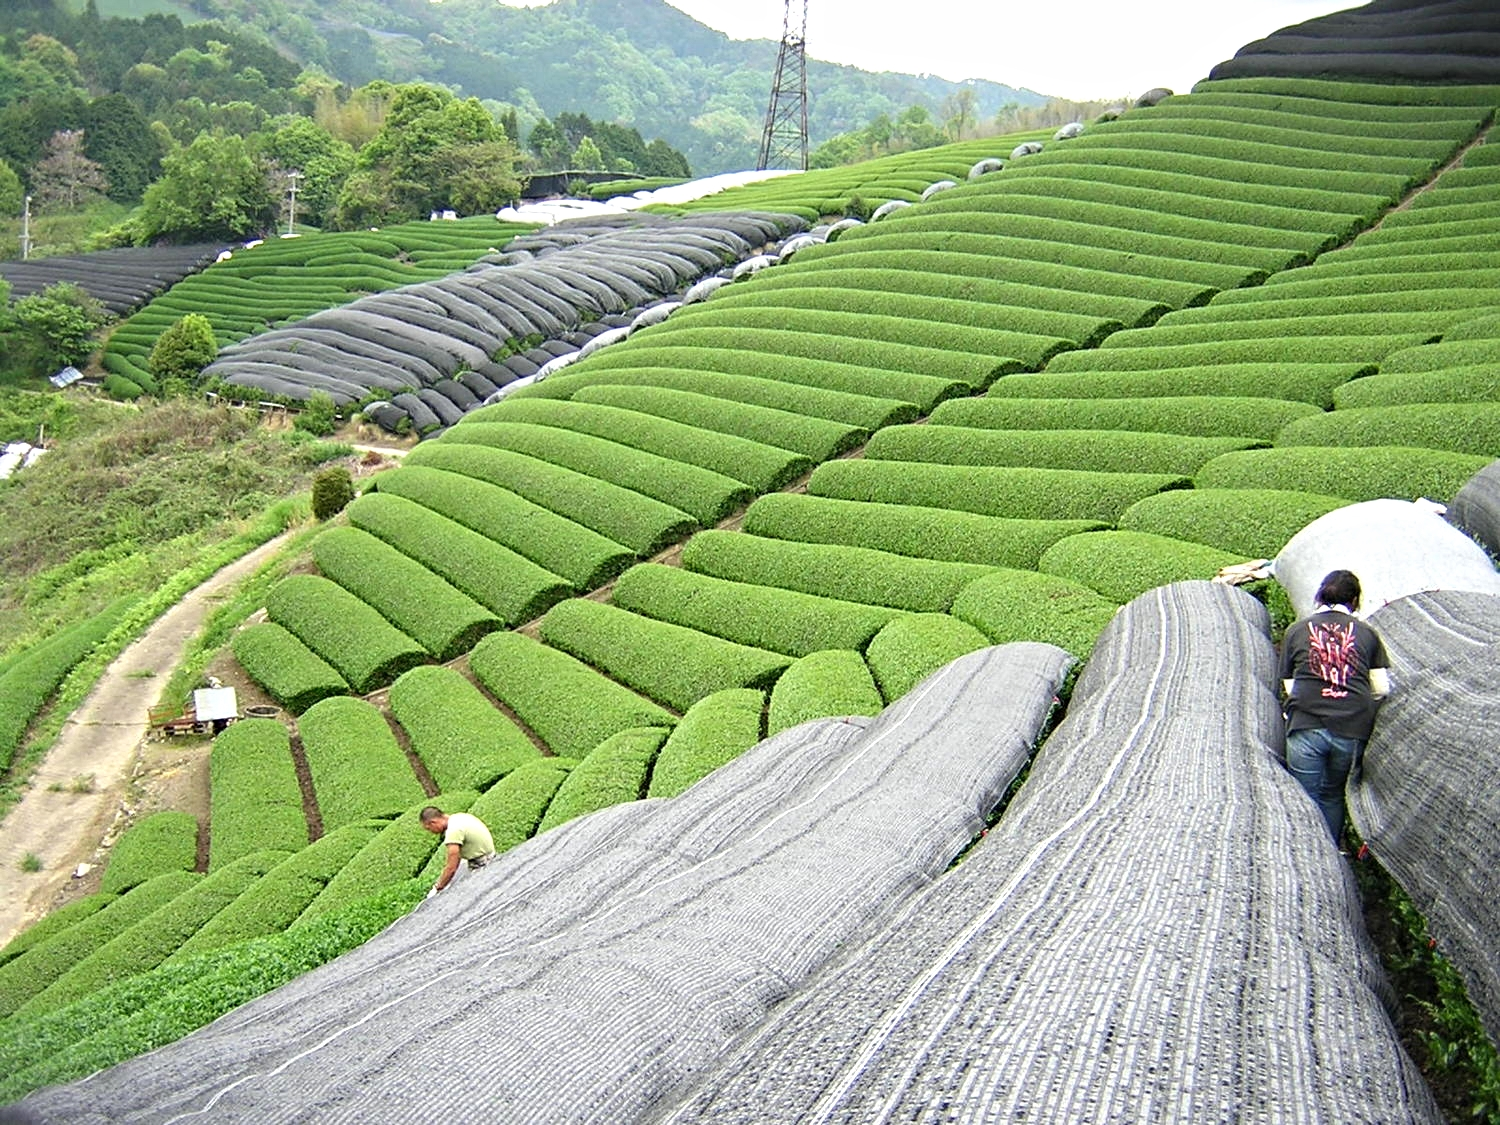 The Tea workers shading the tea plantations.